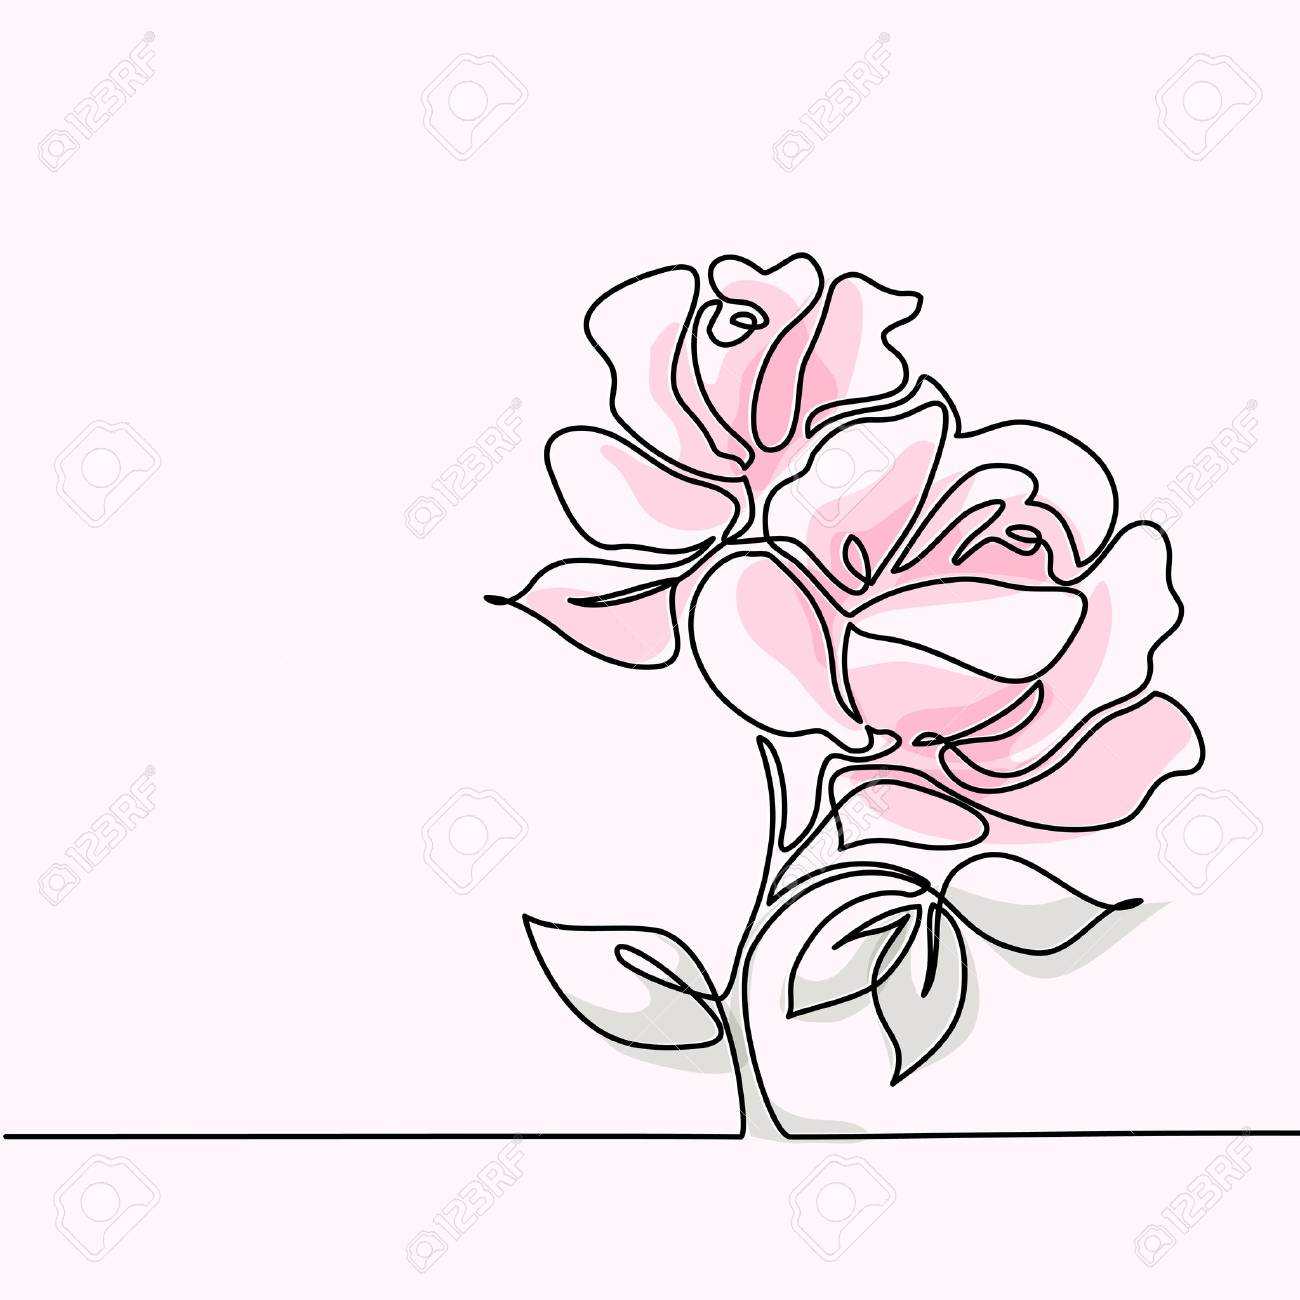 Beautiful Soft Color Pink Rose Flowers Continuous Line Drawing